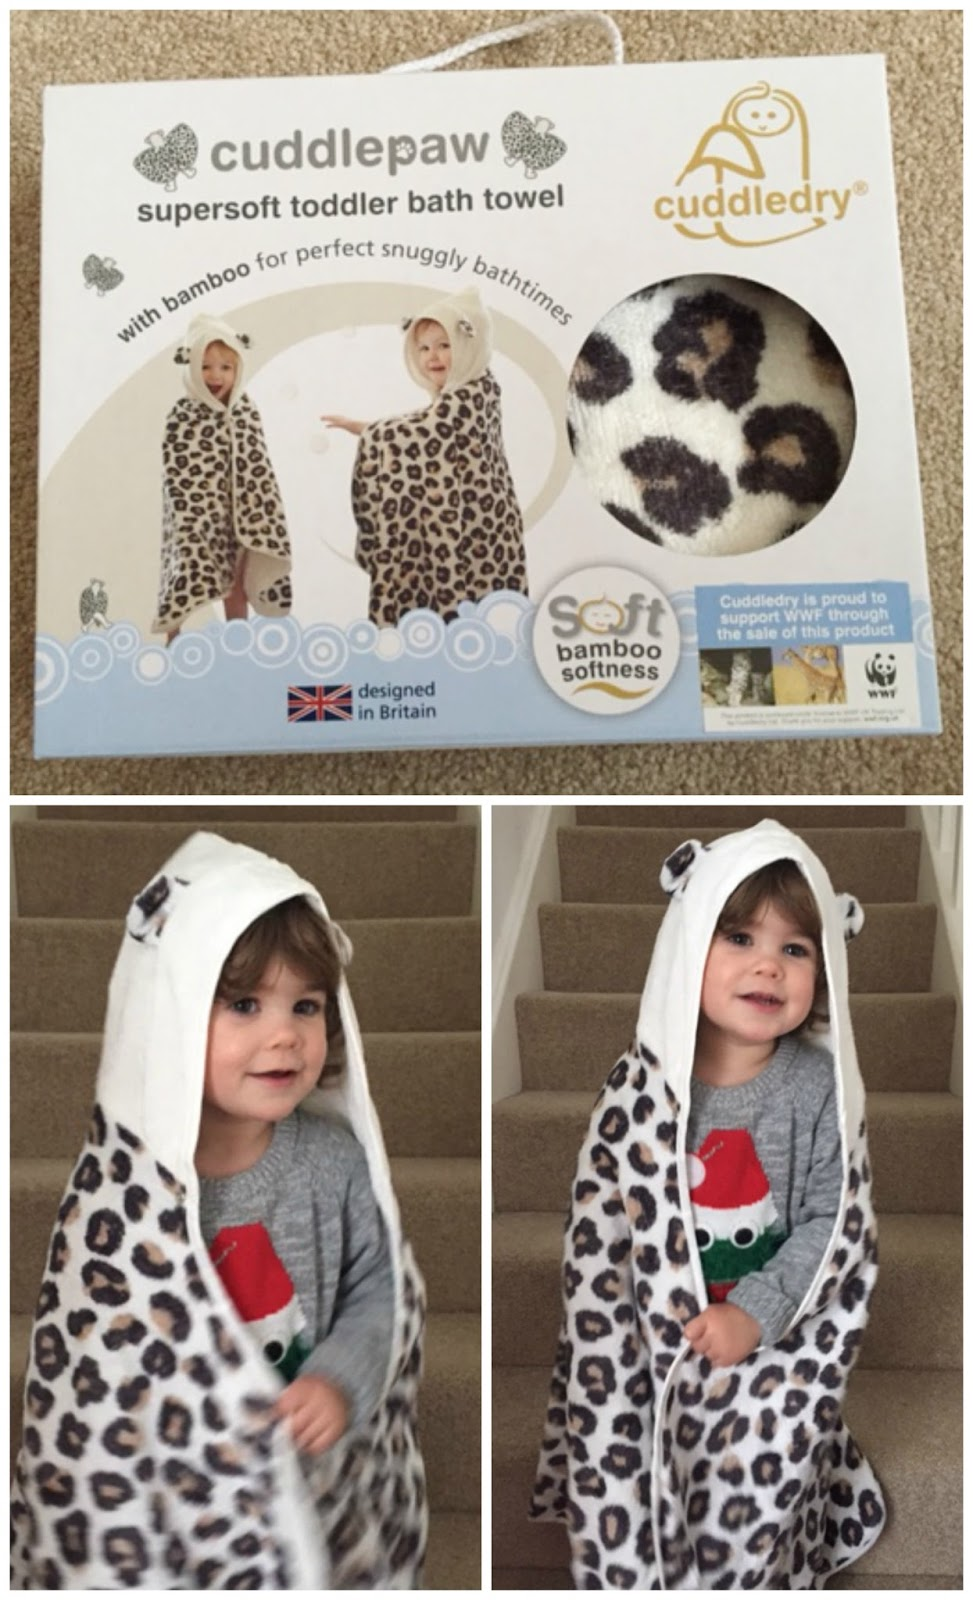 Cuddlepaw Toddler Dress Up Towel Review The German Wife